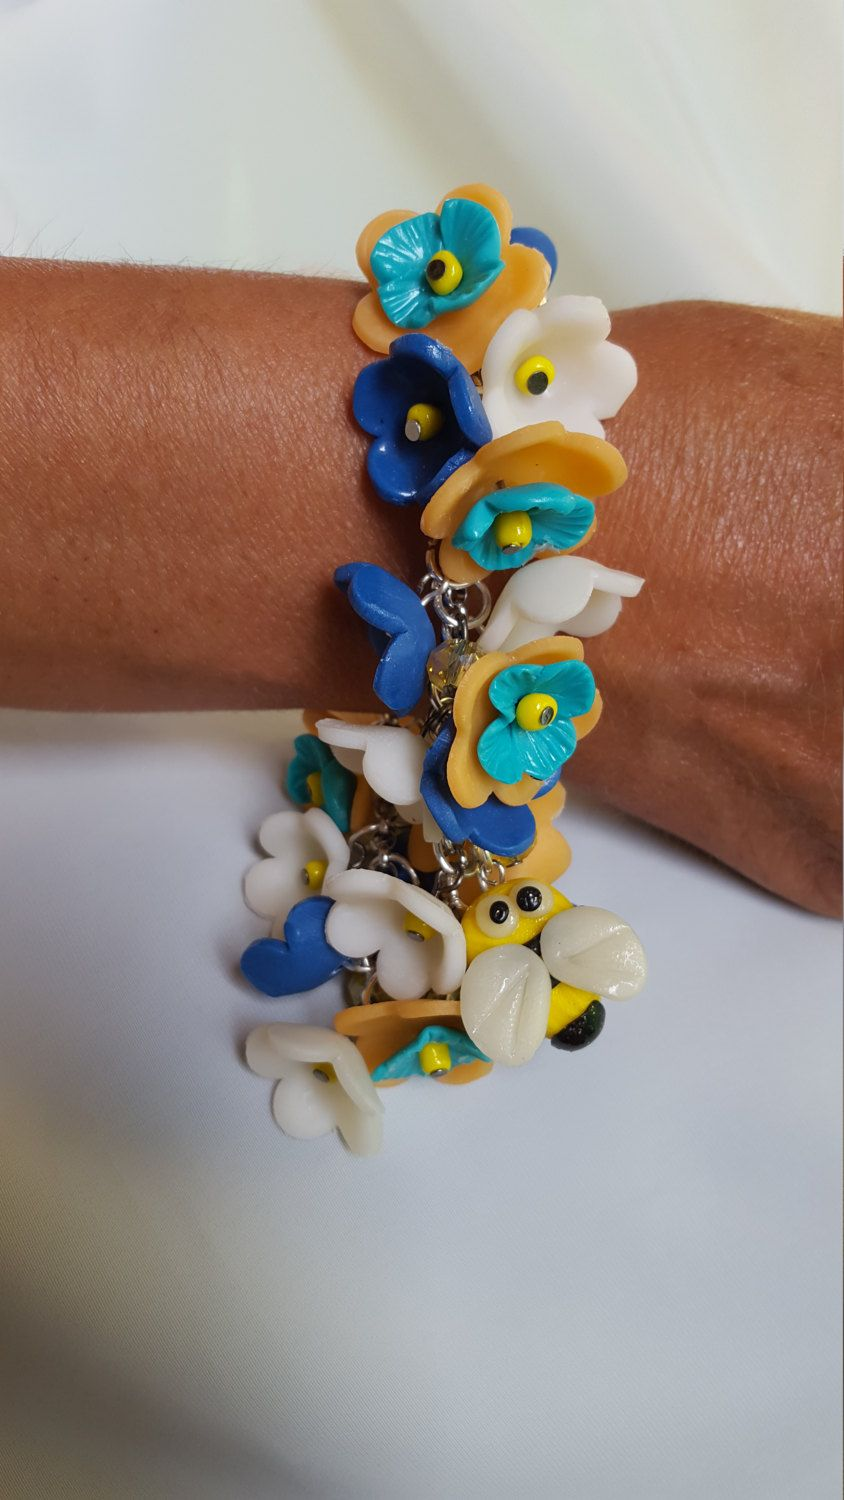 Braceletn bee gift for her yellow white blue handmade colorful flower hypo-allergic idea romantic boho style caribbean gorgeous elegant cute di MegCreationsFenix su Etsy